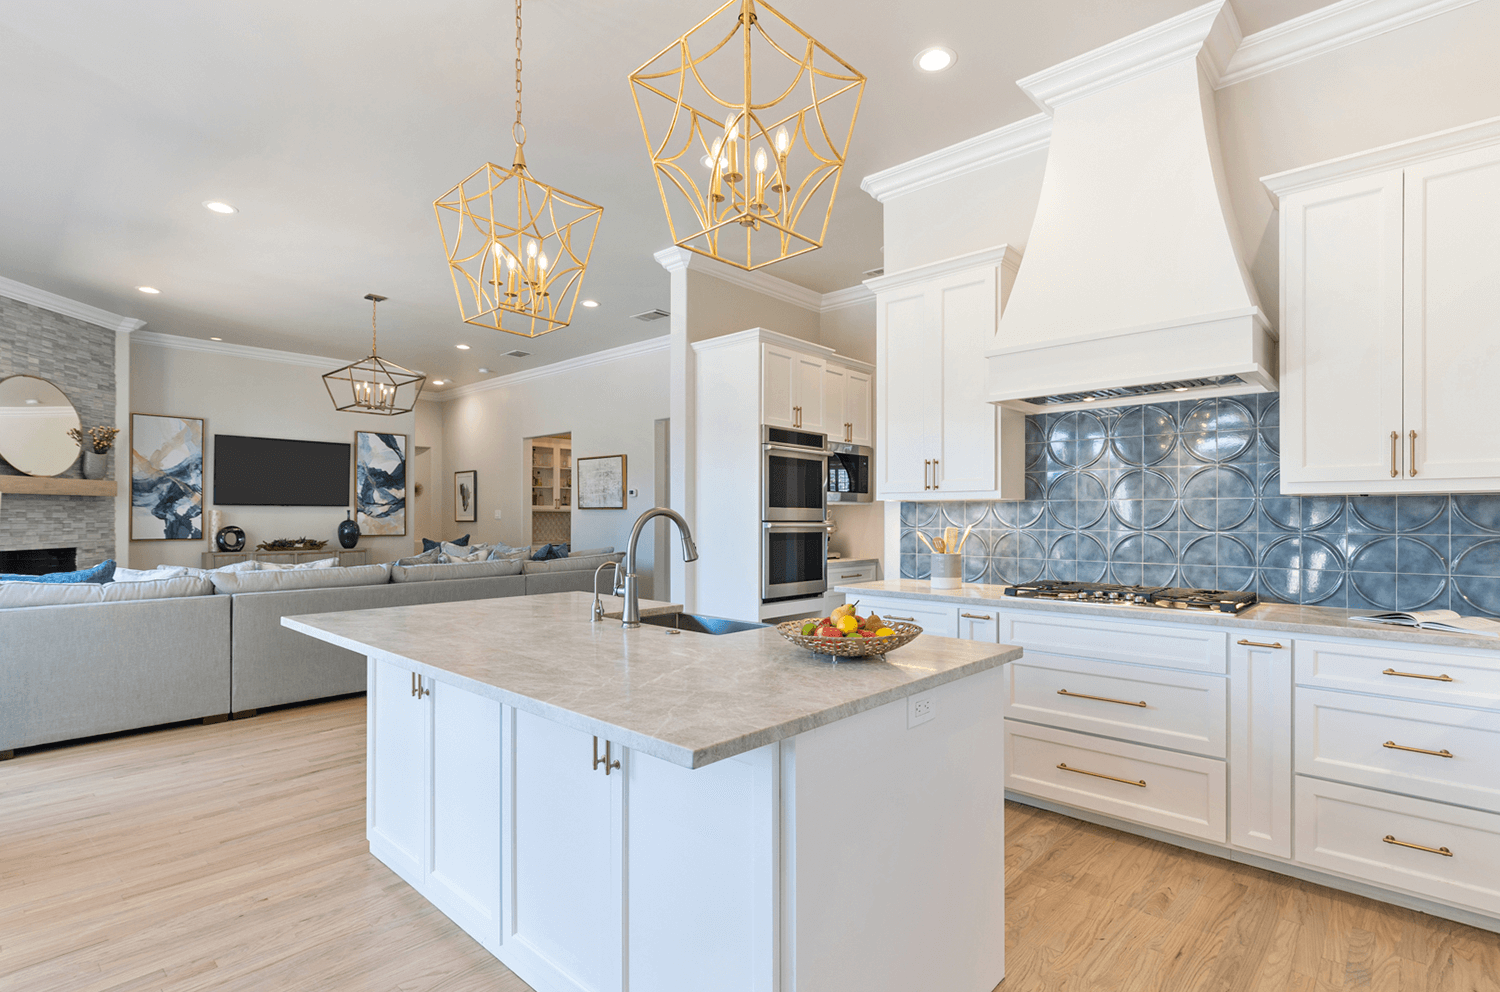 A whole home remodel and furnishings project in Copell, Texas